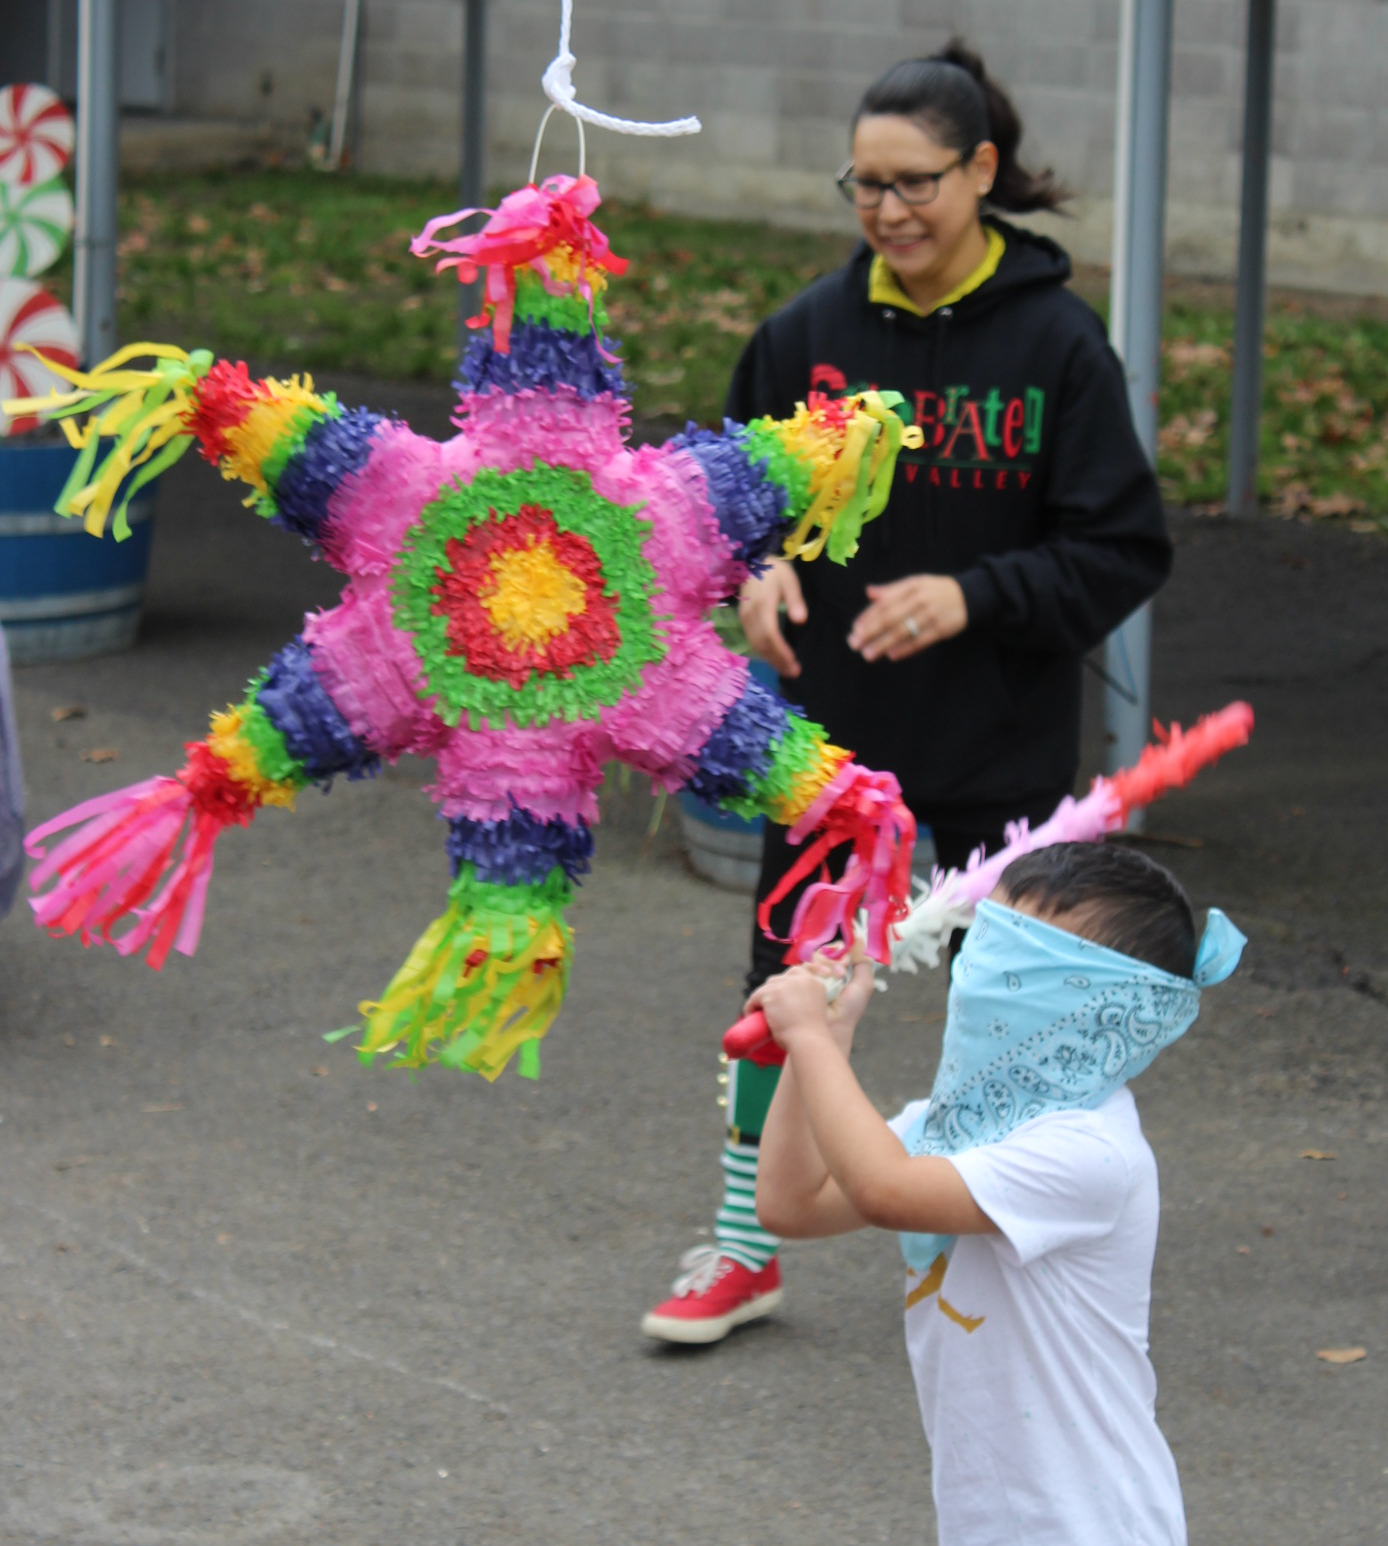 Piñata Time - Outdoor Square